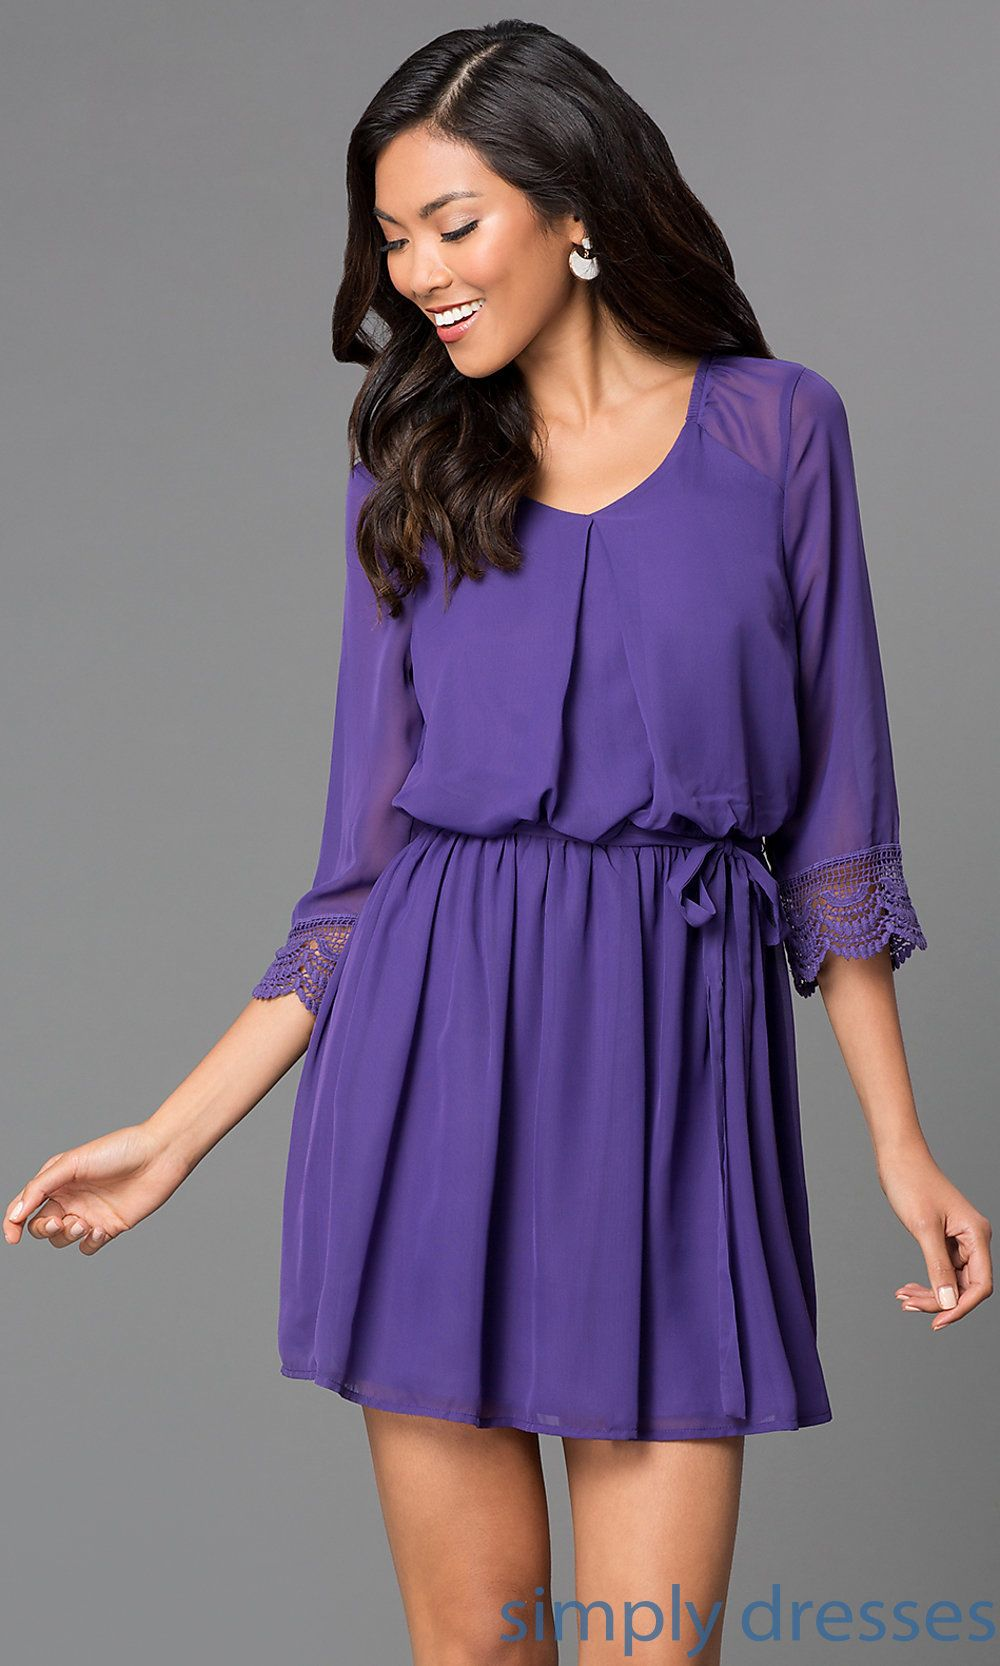 Dress short lilac speechless dress jacj with half sleeves